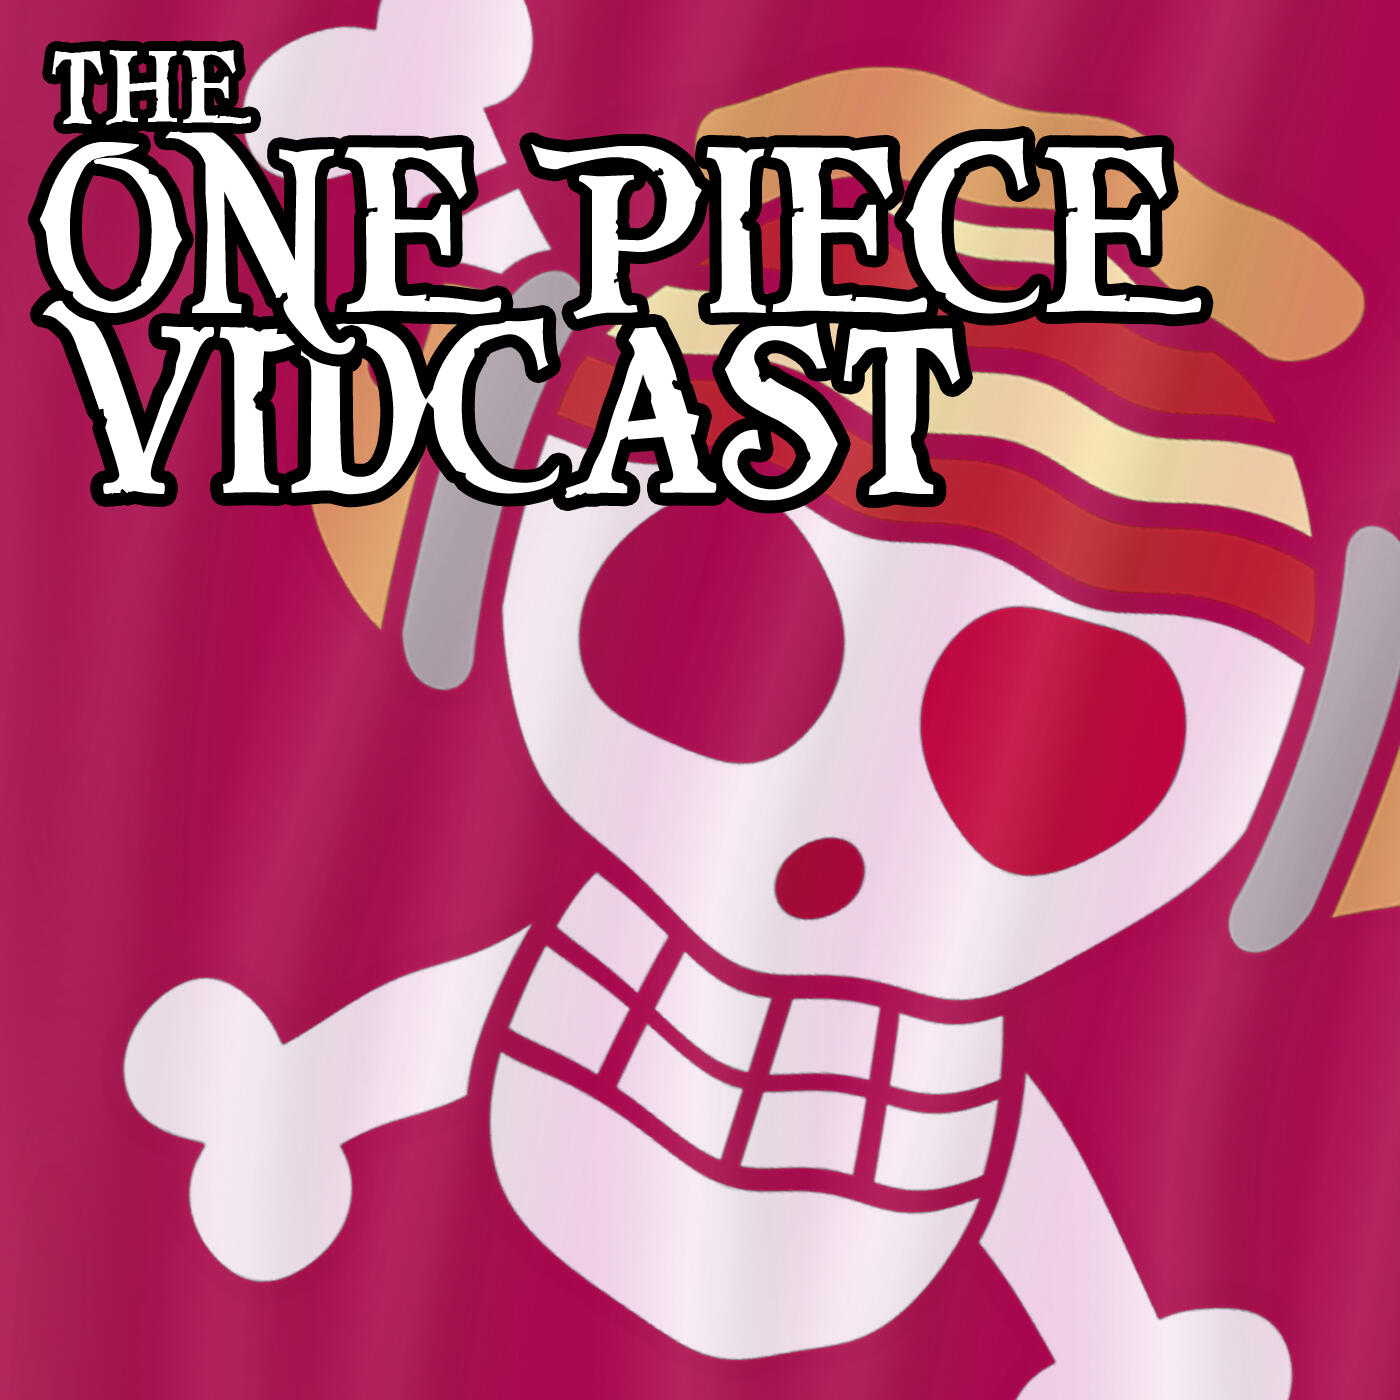 Listen to the The One Piece Vidcast Episode - Vidcast Special